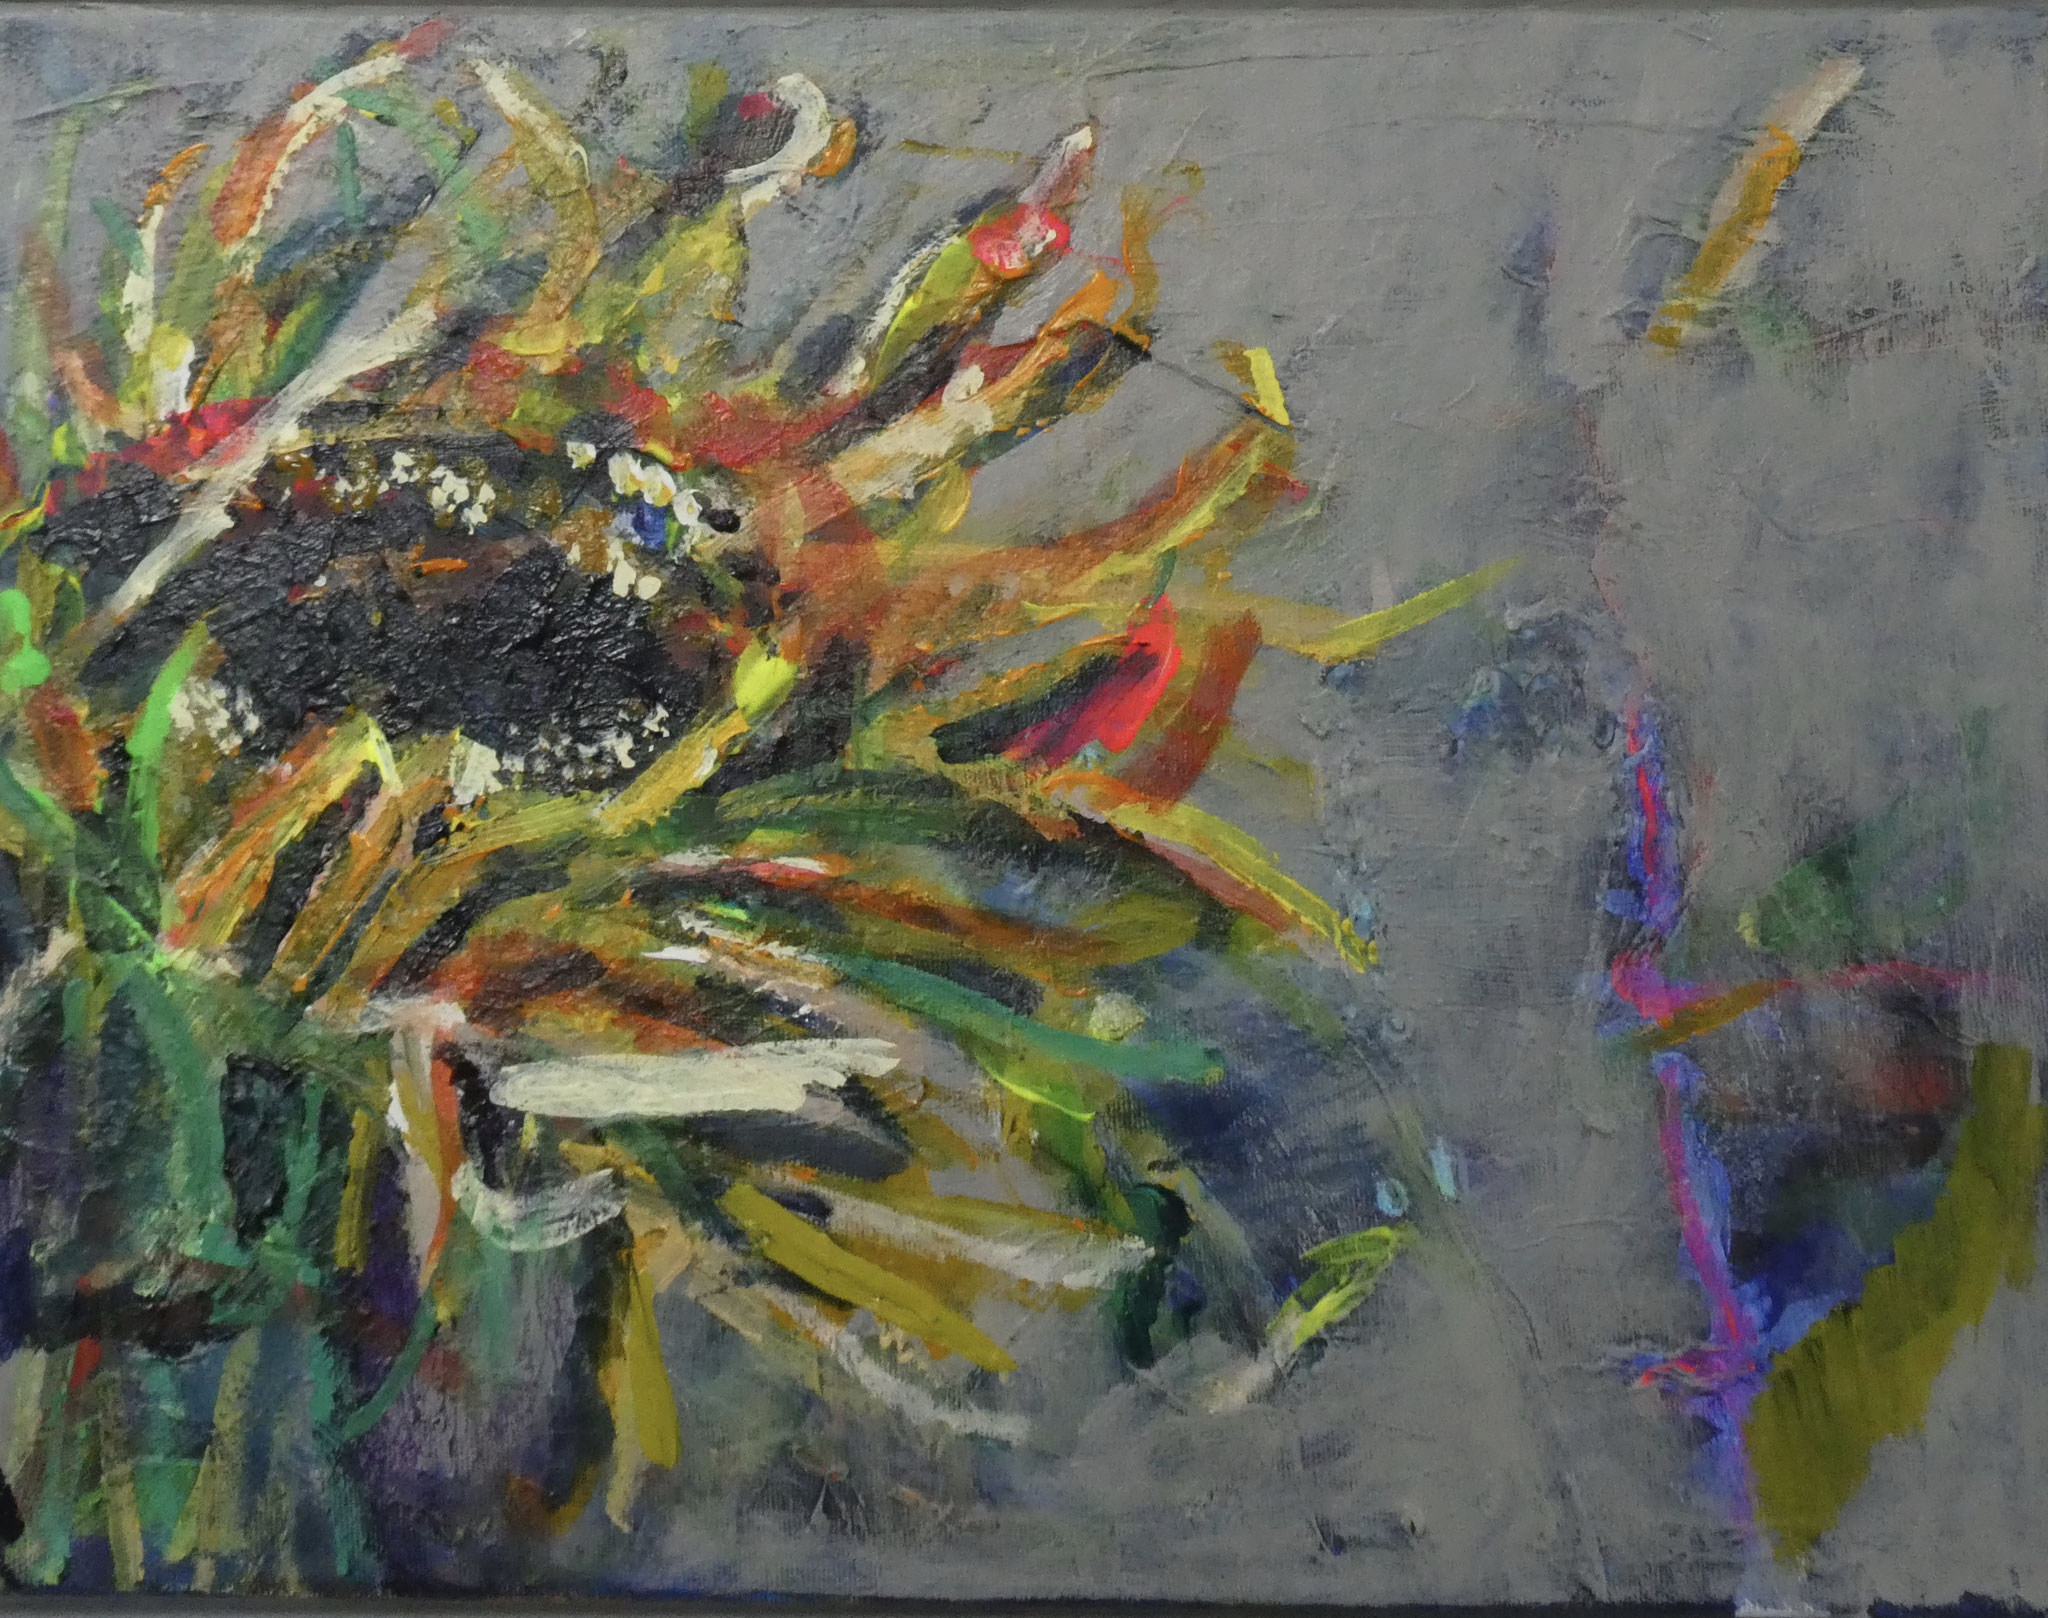 Sonnenblume 6,  30x40,  acrylic on canvas